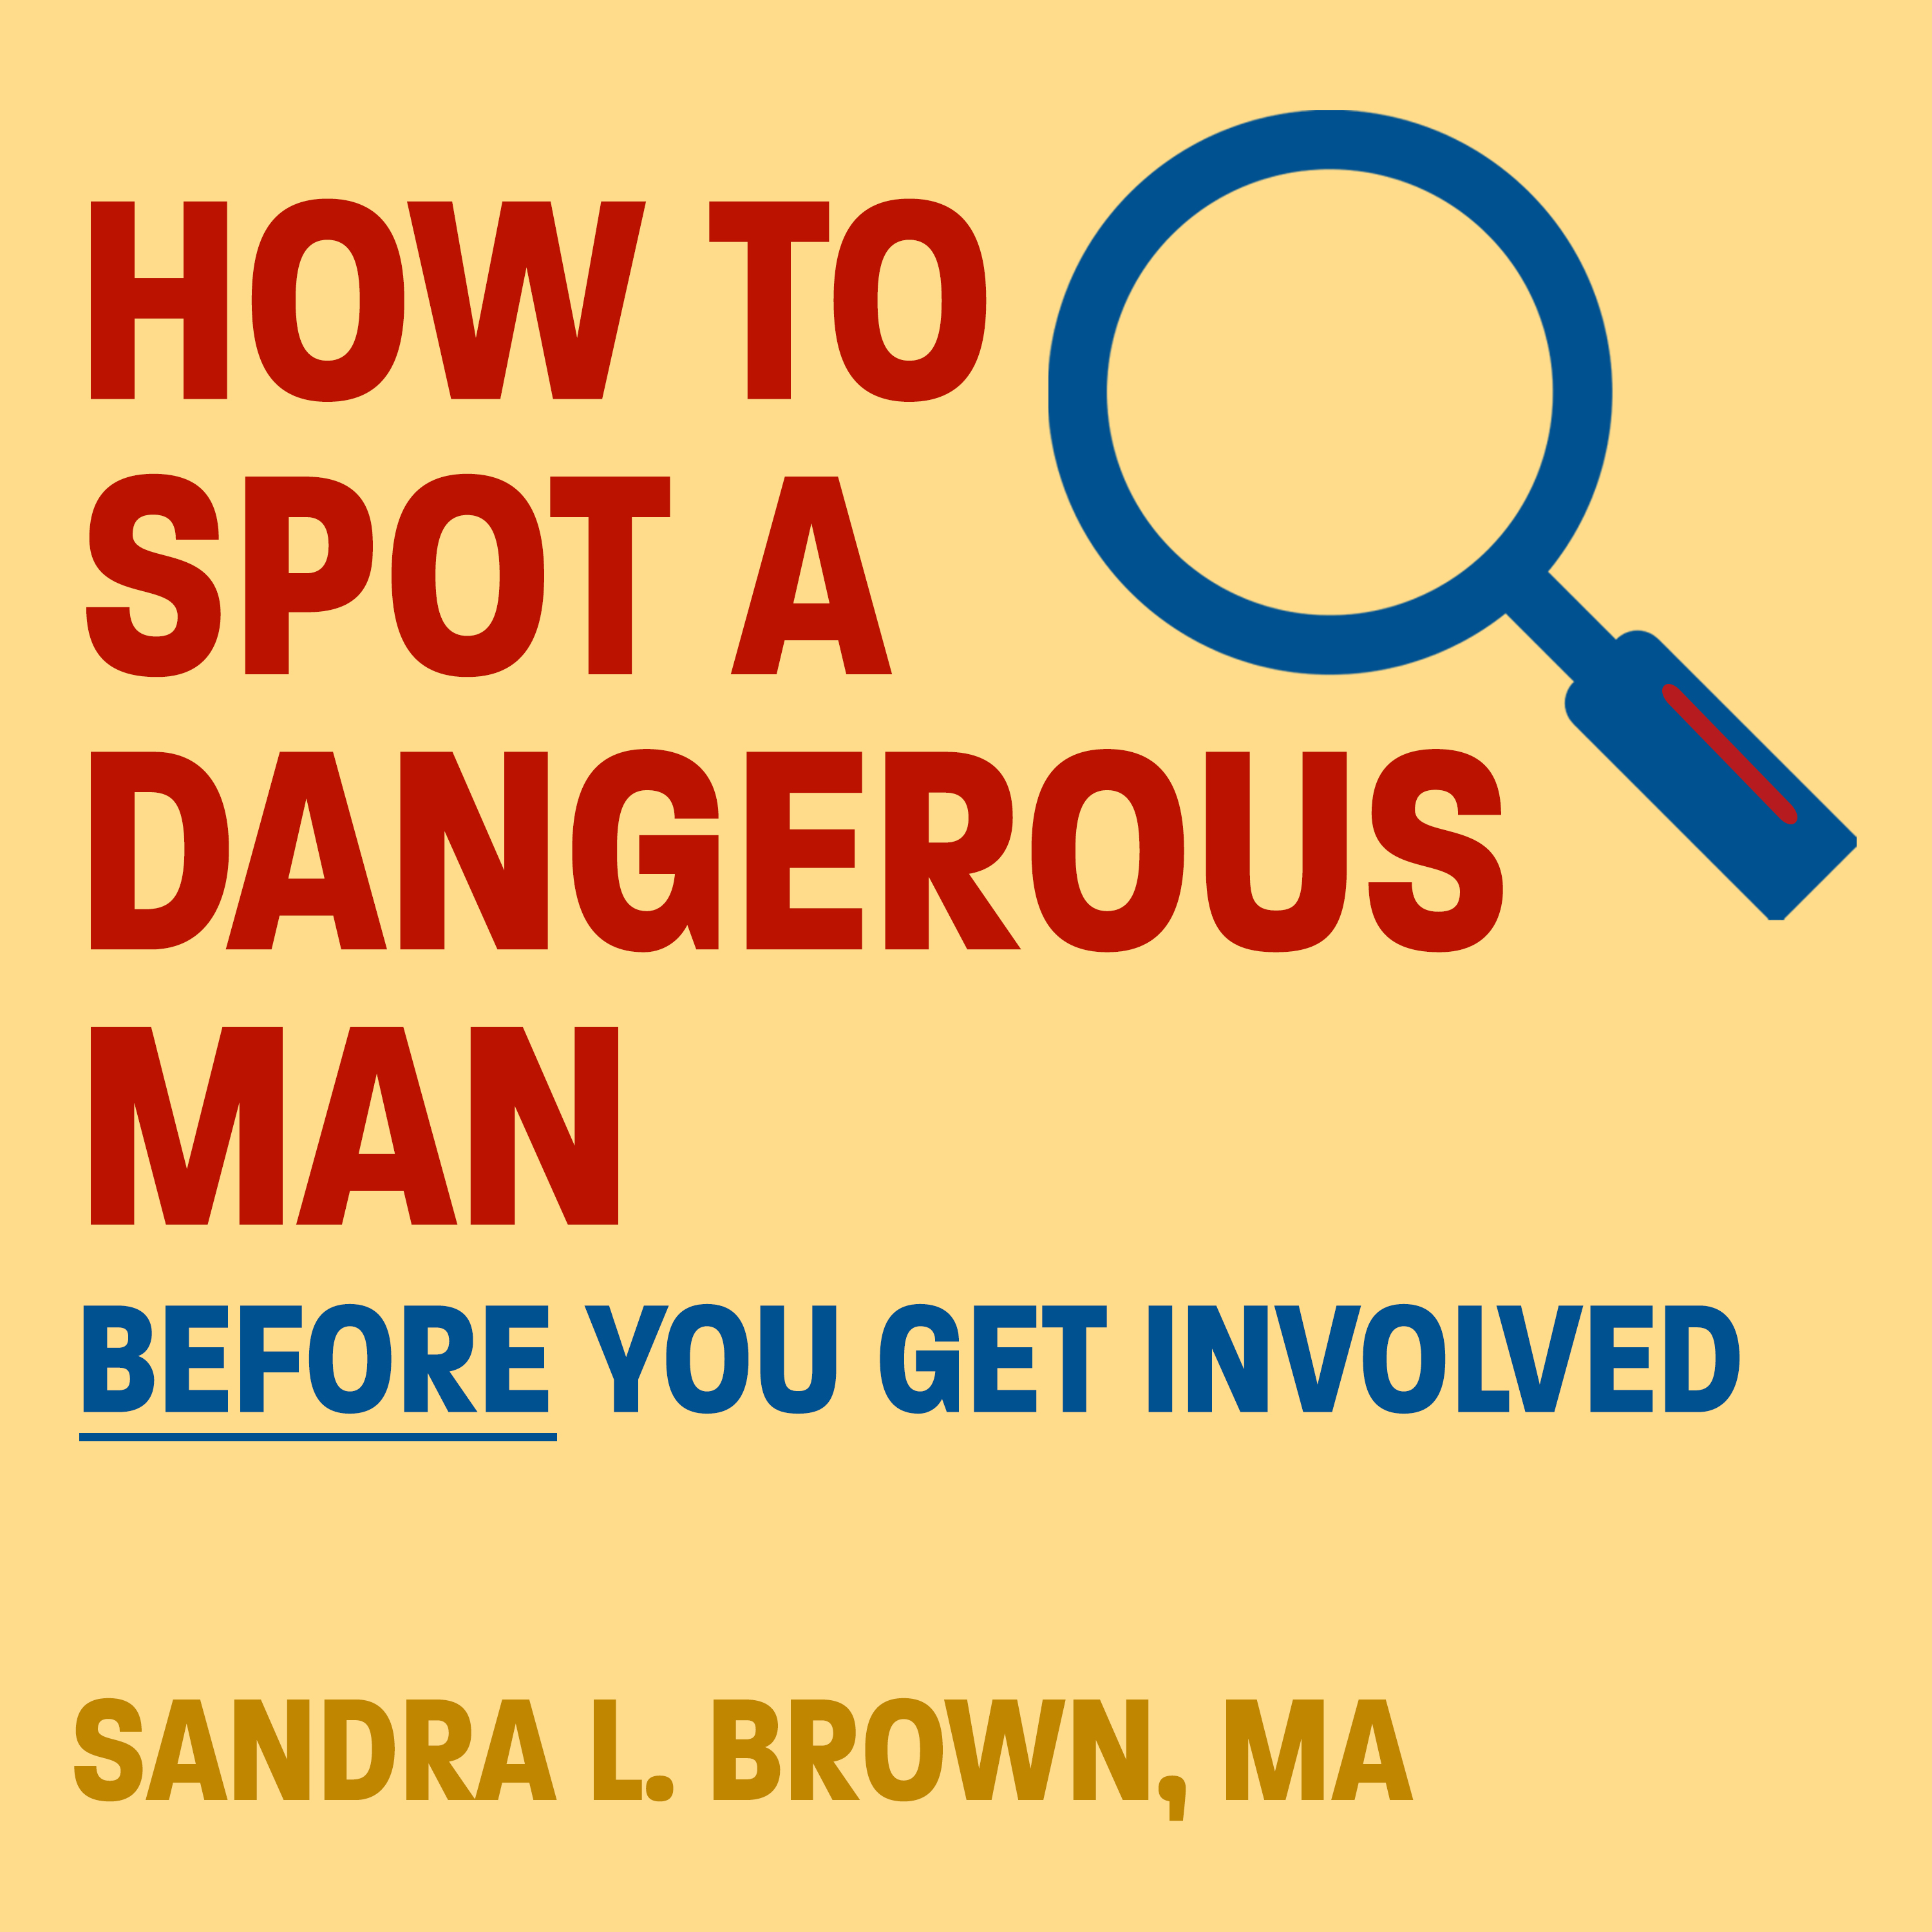 How to Spot a Dangerous Man recommend